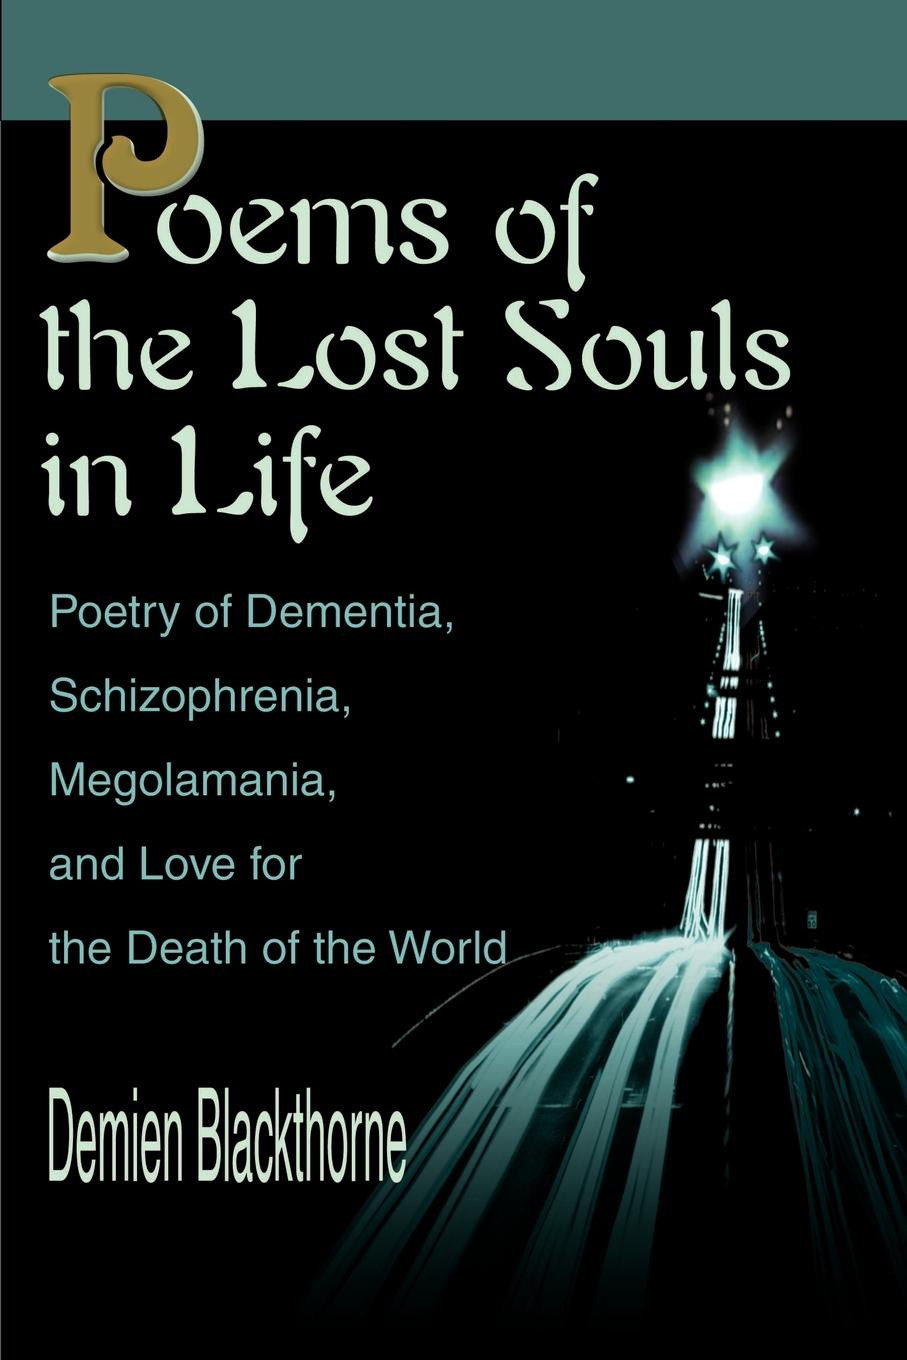 Demien Blackthorne Poems of the Lost Souls in Life. Poetry of Dementia, Schizophrenia, Megolamania, and Love for the Death of the World koontz d frankenstein lost souls